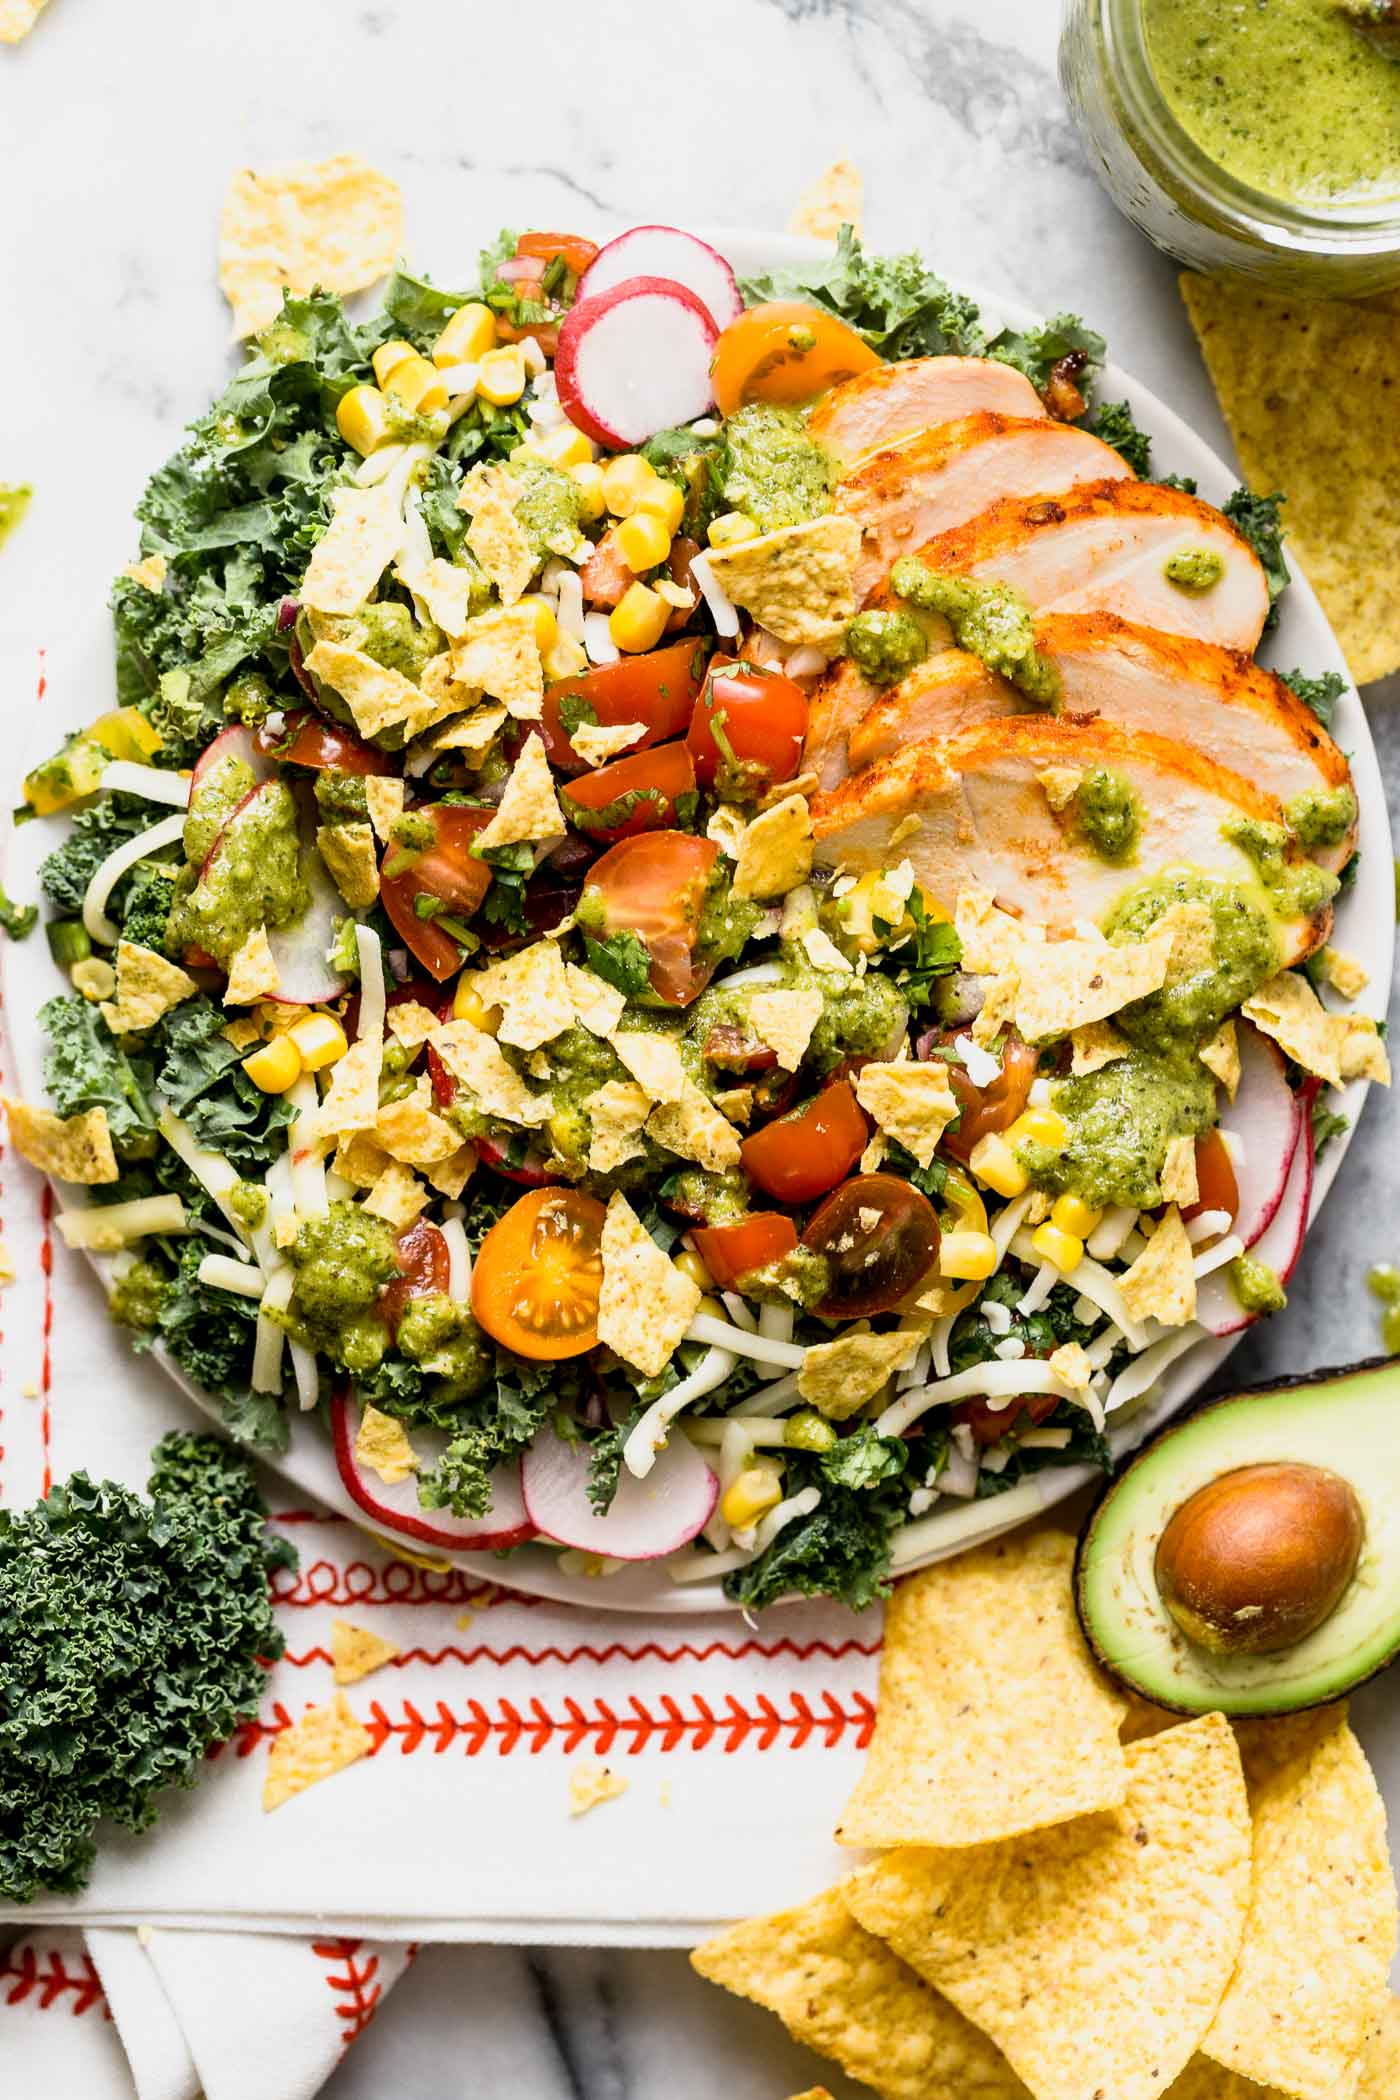 a healthy kale taco salad with chipotle lime chicken, roasted jalapeno vinaigrette, black beans, corn, pepper jack cheese, and a quick pico de gallo. this lightened-up take on a taco salad will be your new favorite! #playswellwithbutter #healthyrecipe #mealprep #healthyrecipe #kale #tacosalad #saladrecipe